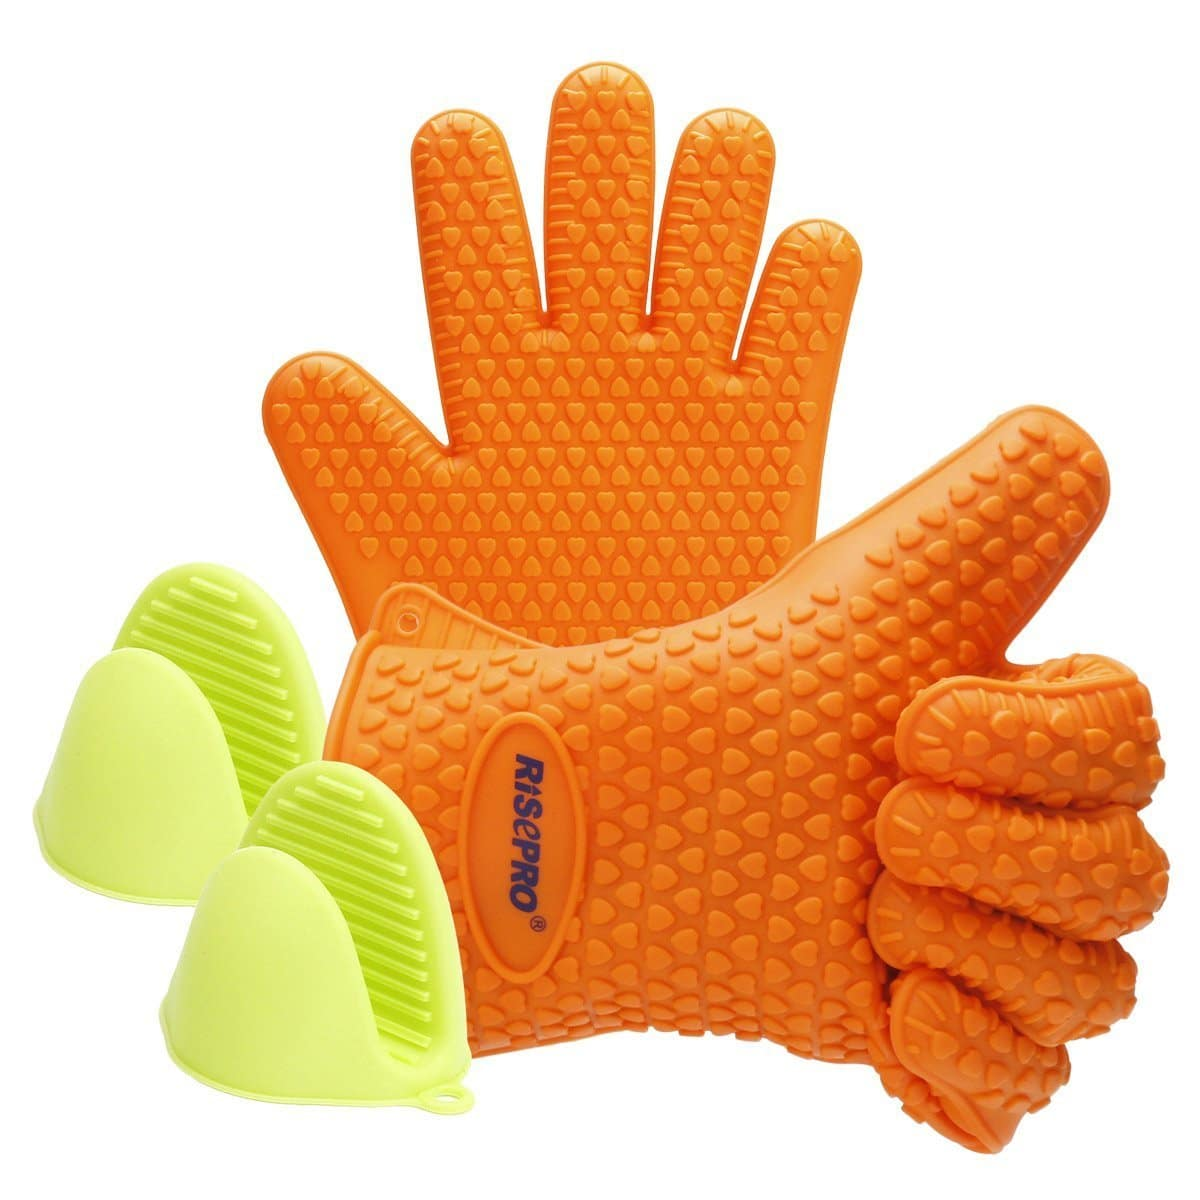 Heat Resistant Silicone Cooking Gloves - Grilling/BBQ/Baking (Free Prime Shipping) $4.95